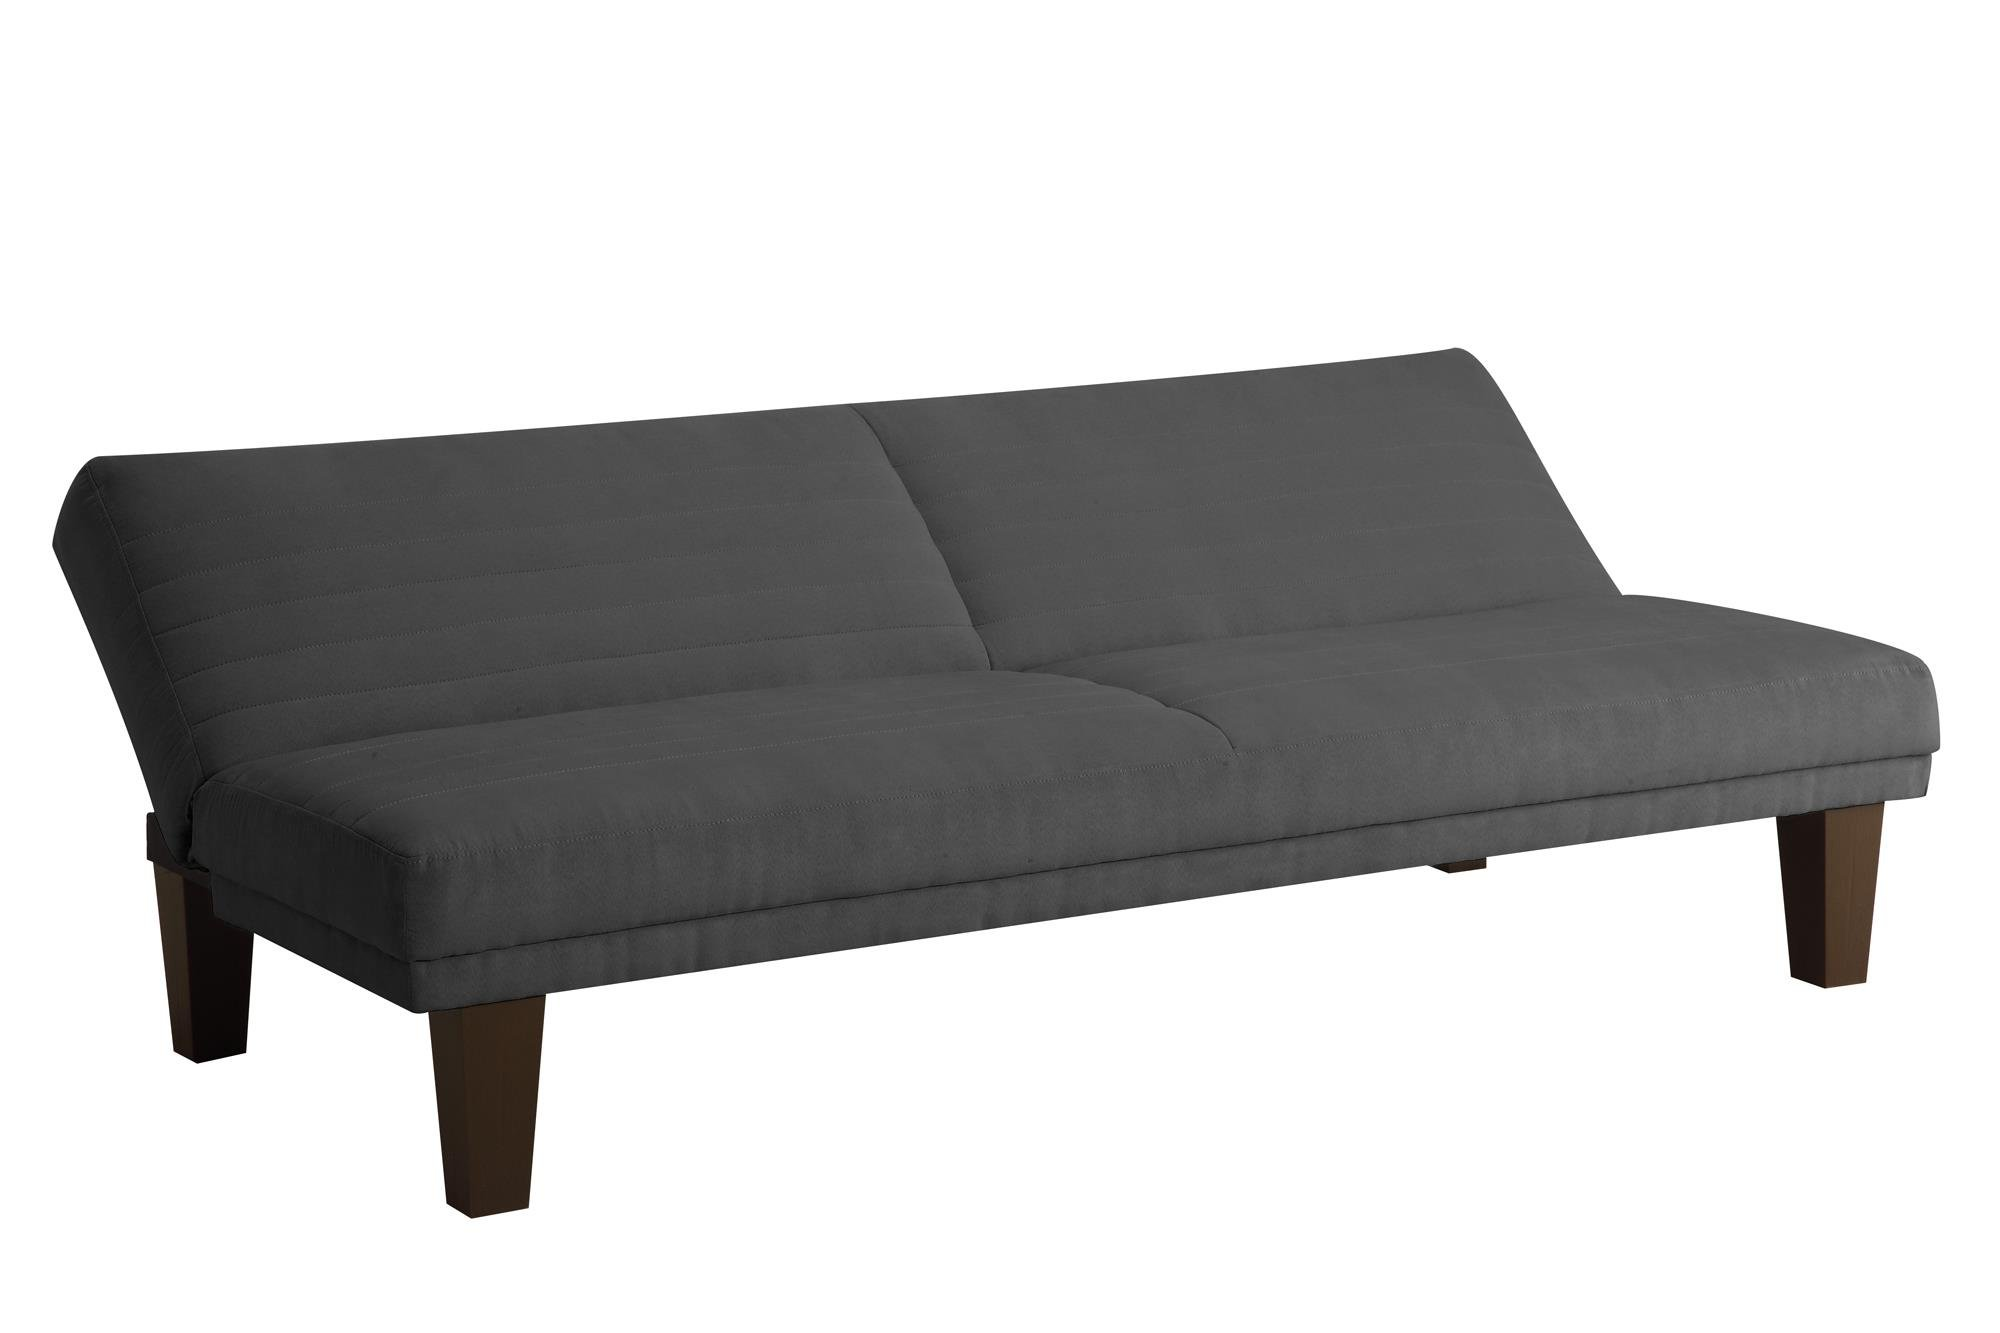 DHP Dillan Convertible Futon Couch Bed with Microfiber Upholstery and Wood Legs - Grey by DHP (Image #3)